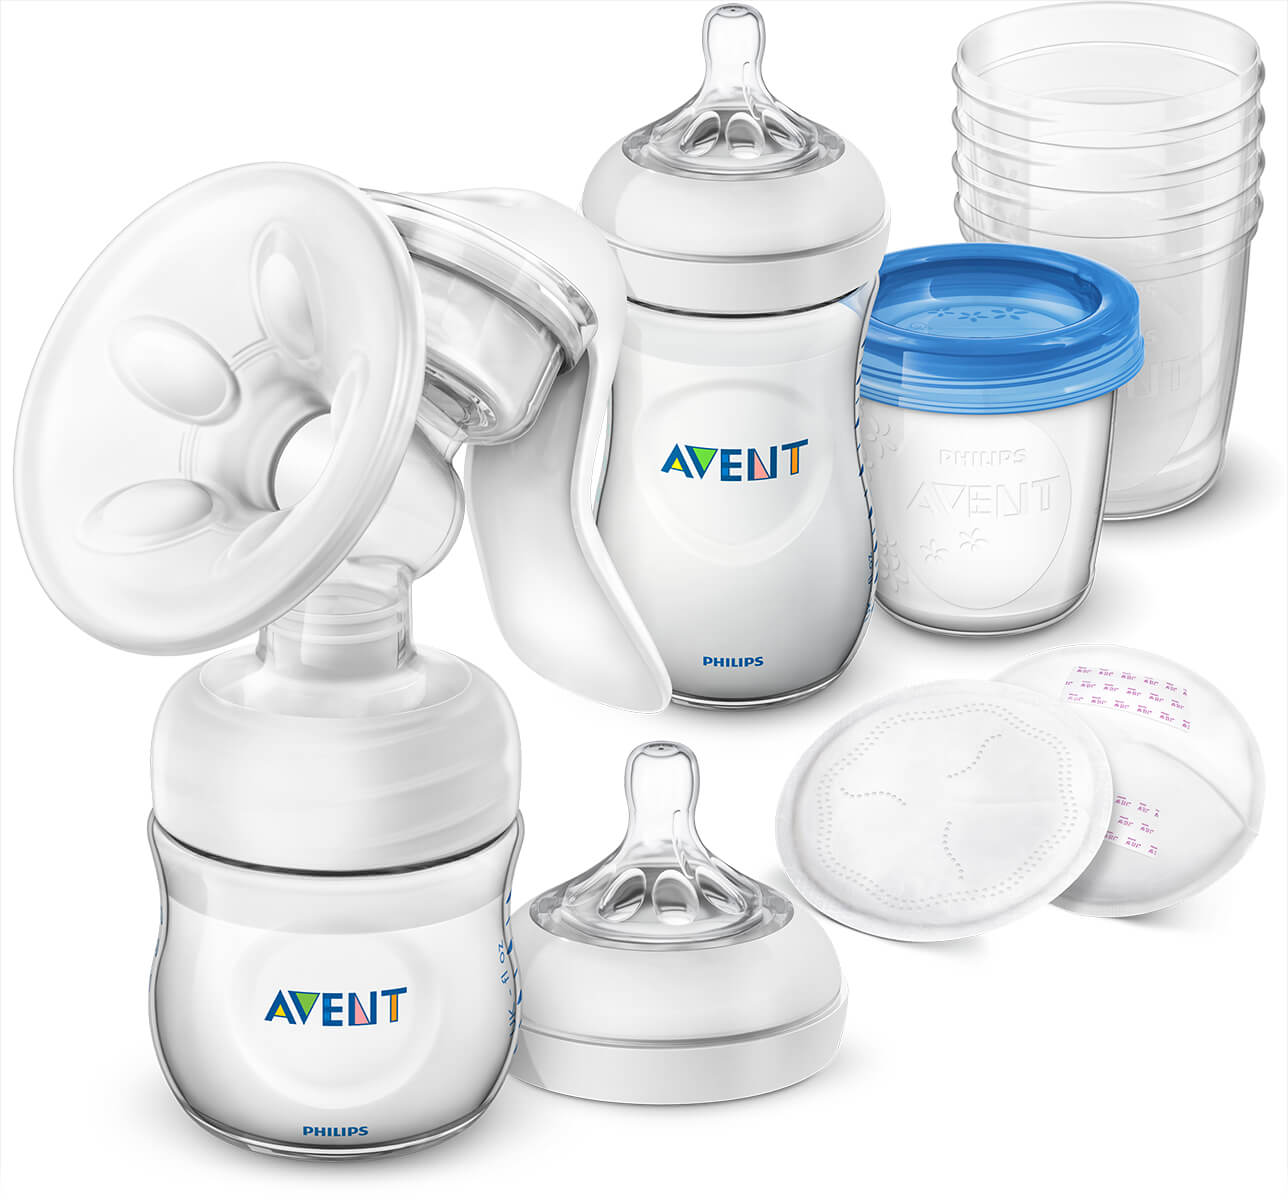 Philips Avent Breastfeeding Set With Manual Breastpump